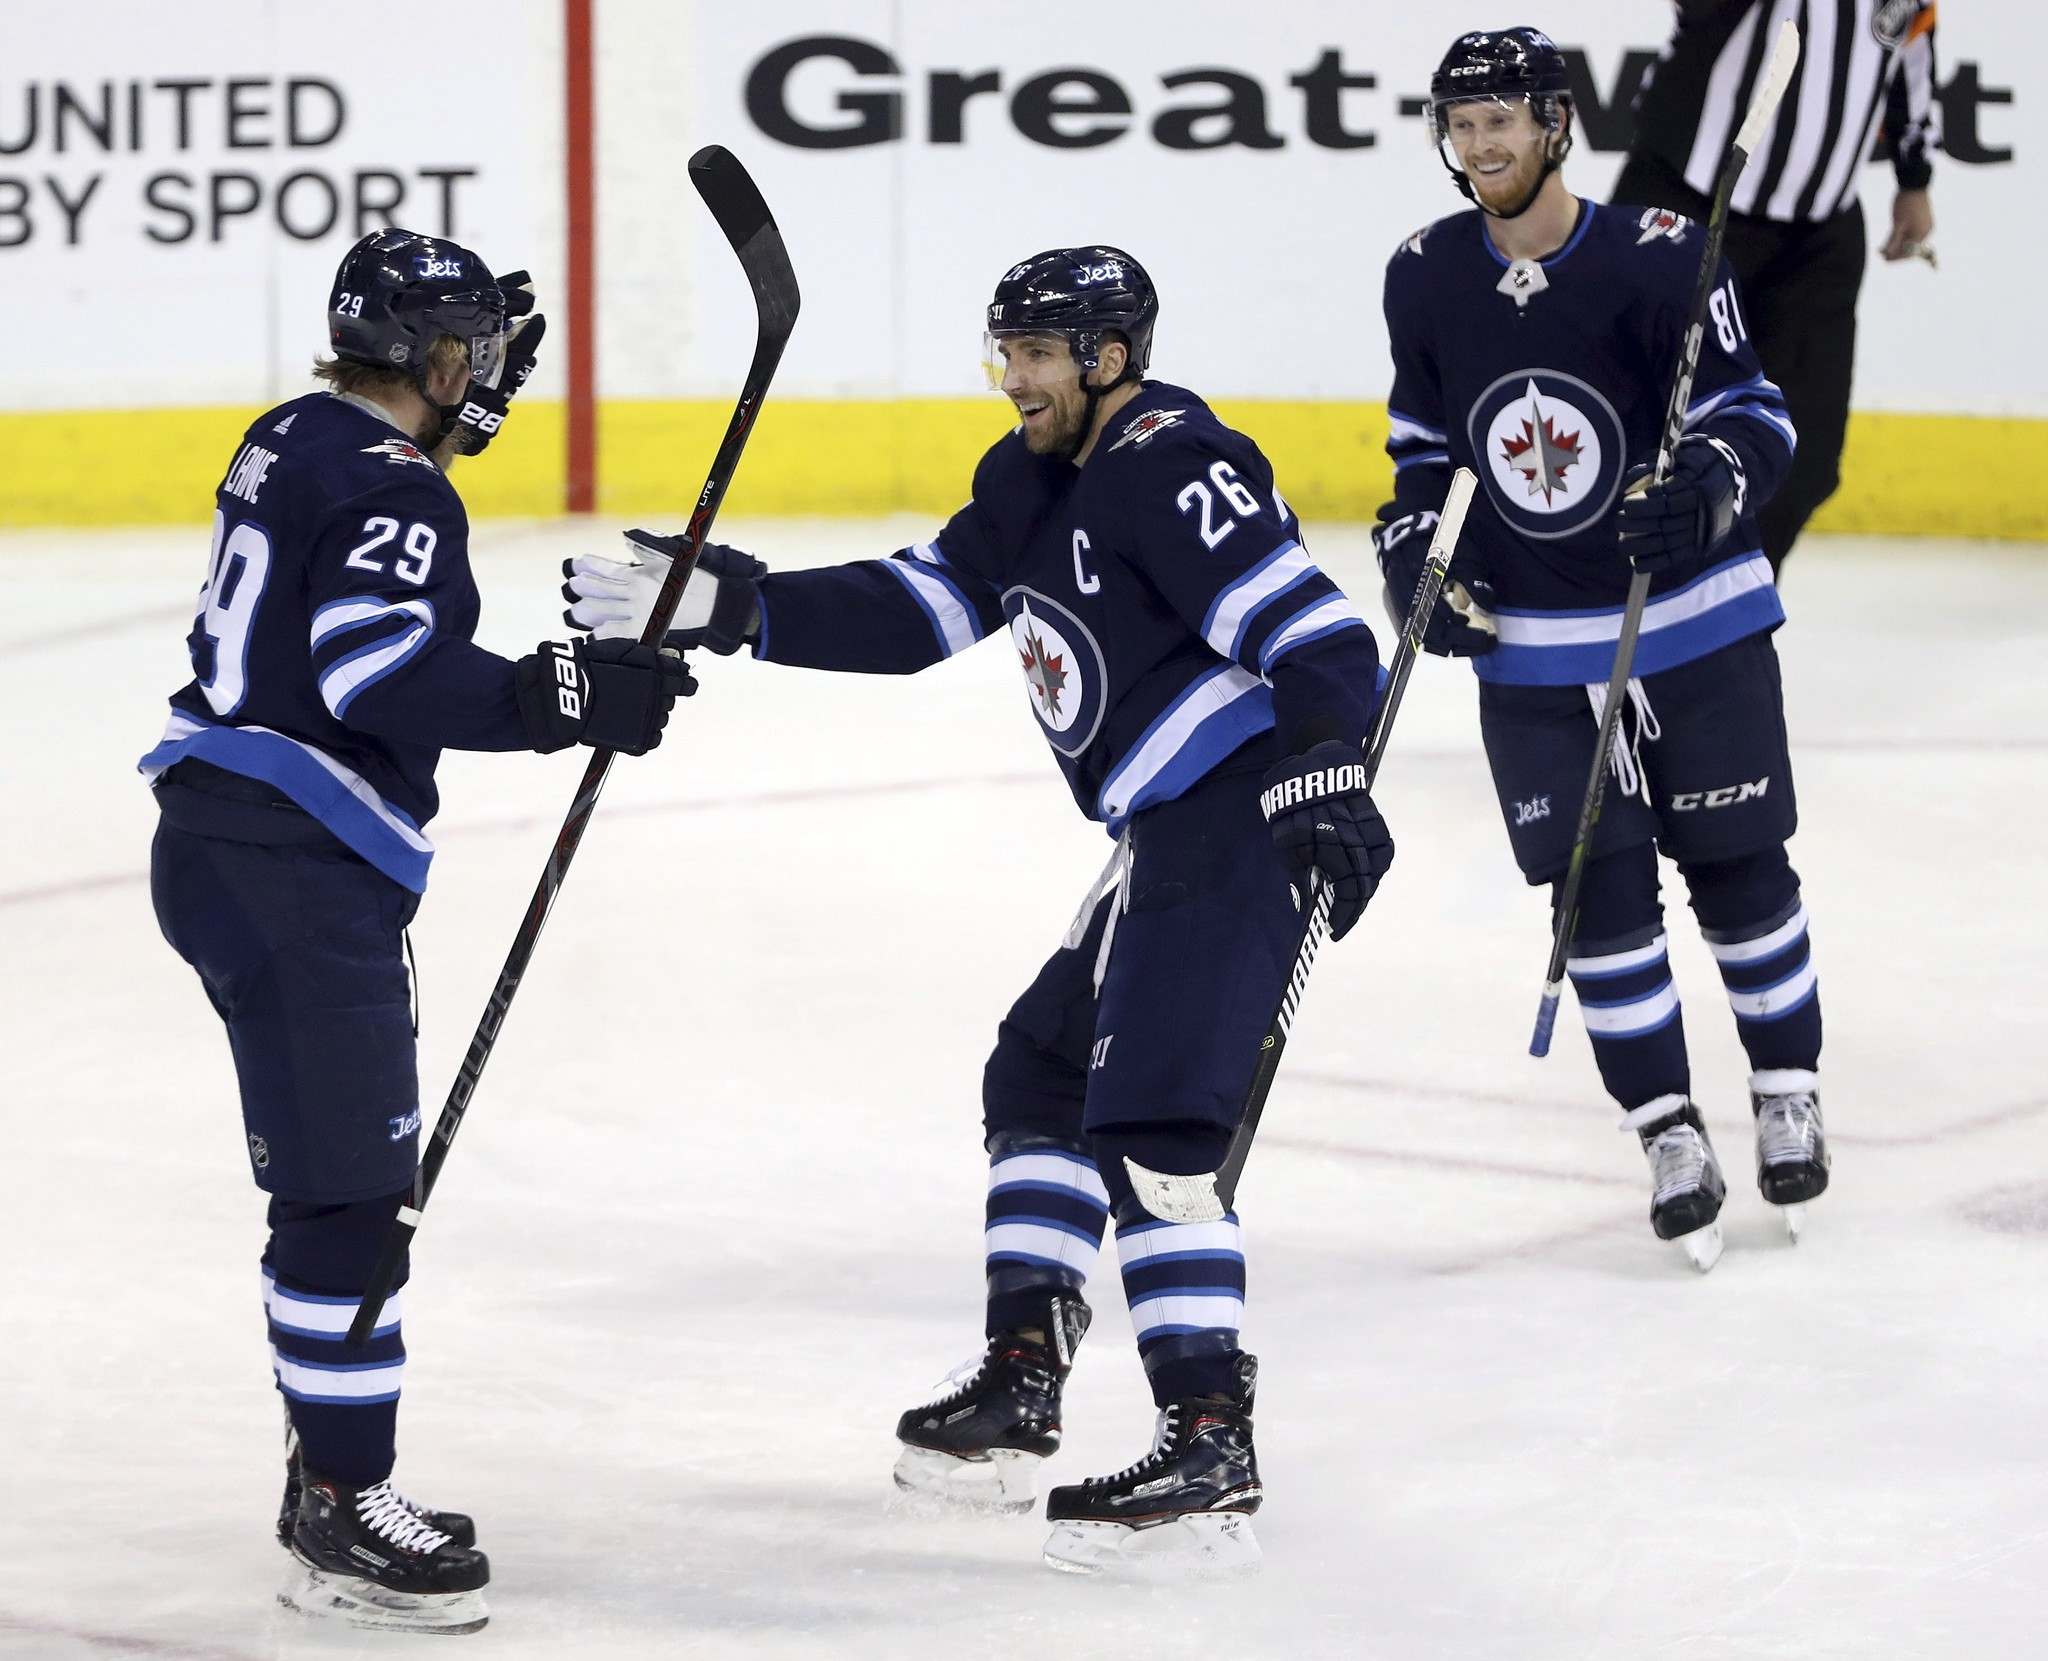 Laine will become the highest-paid Jet when his current entry level deal expires; Wheeler will receive a monster raise and Connor will almost certainly join the Jets six-million-dollar men club. (Trevor Hagan / Canadian Press files)</p>